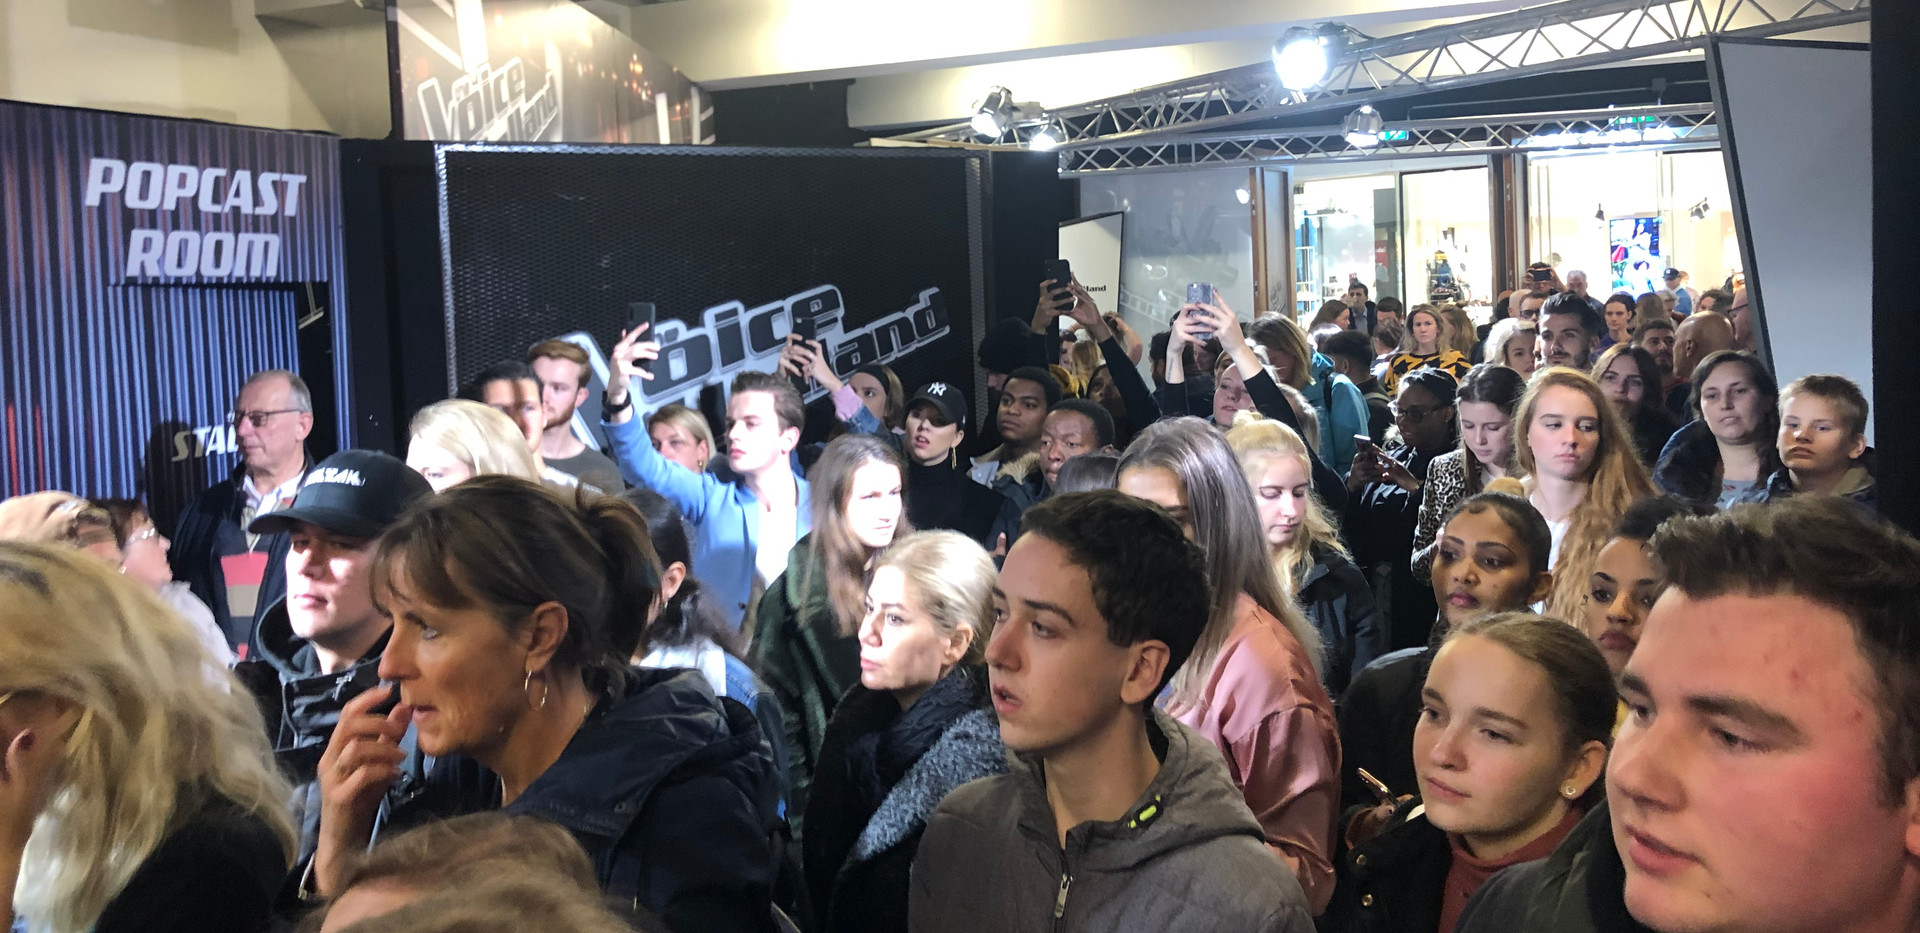 Opening The Voice of Holland pop up store